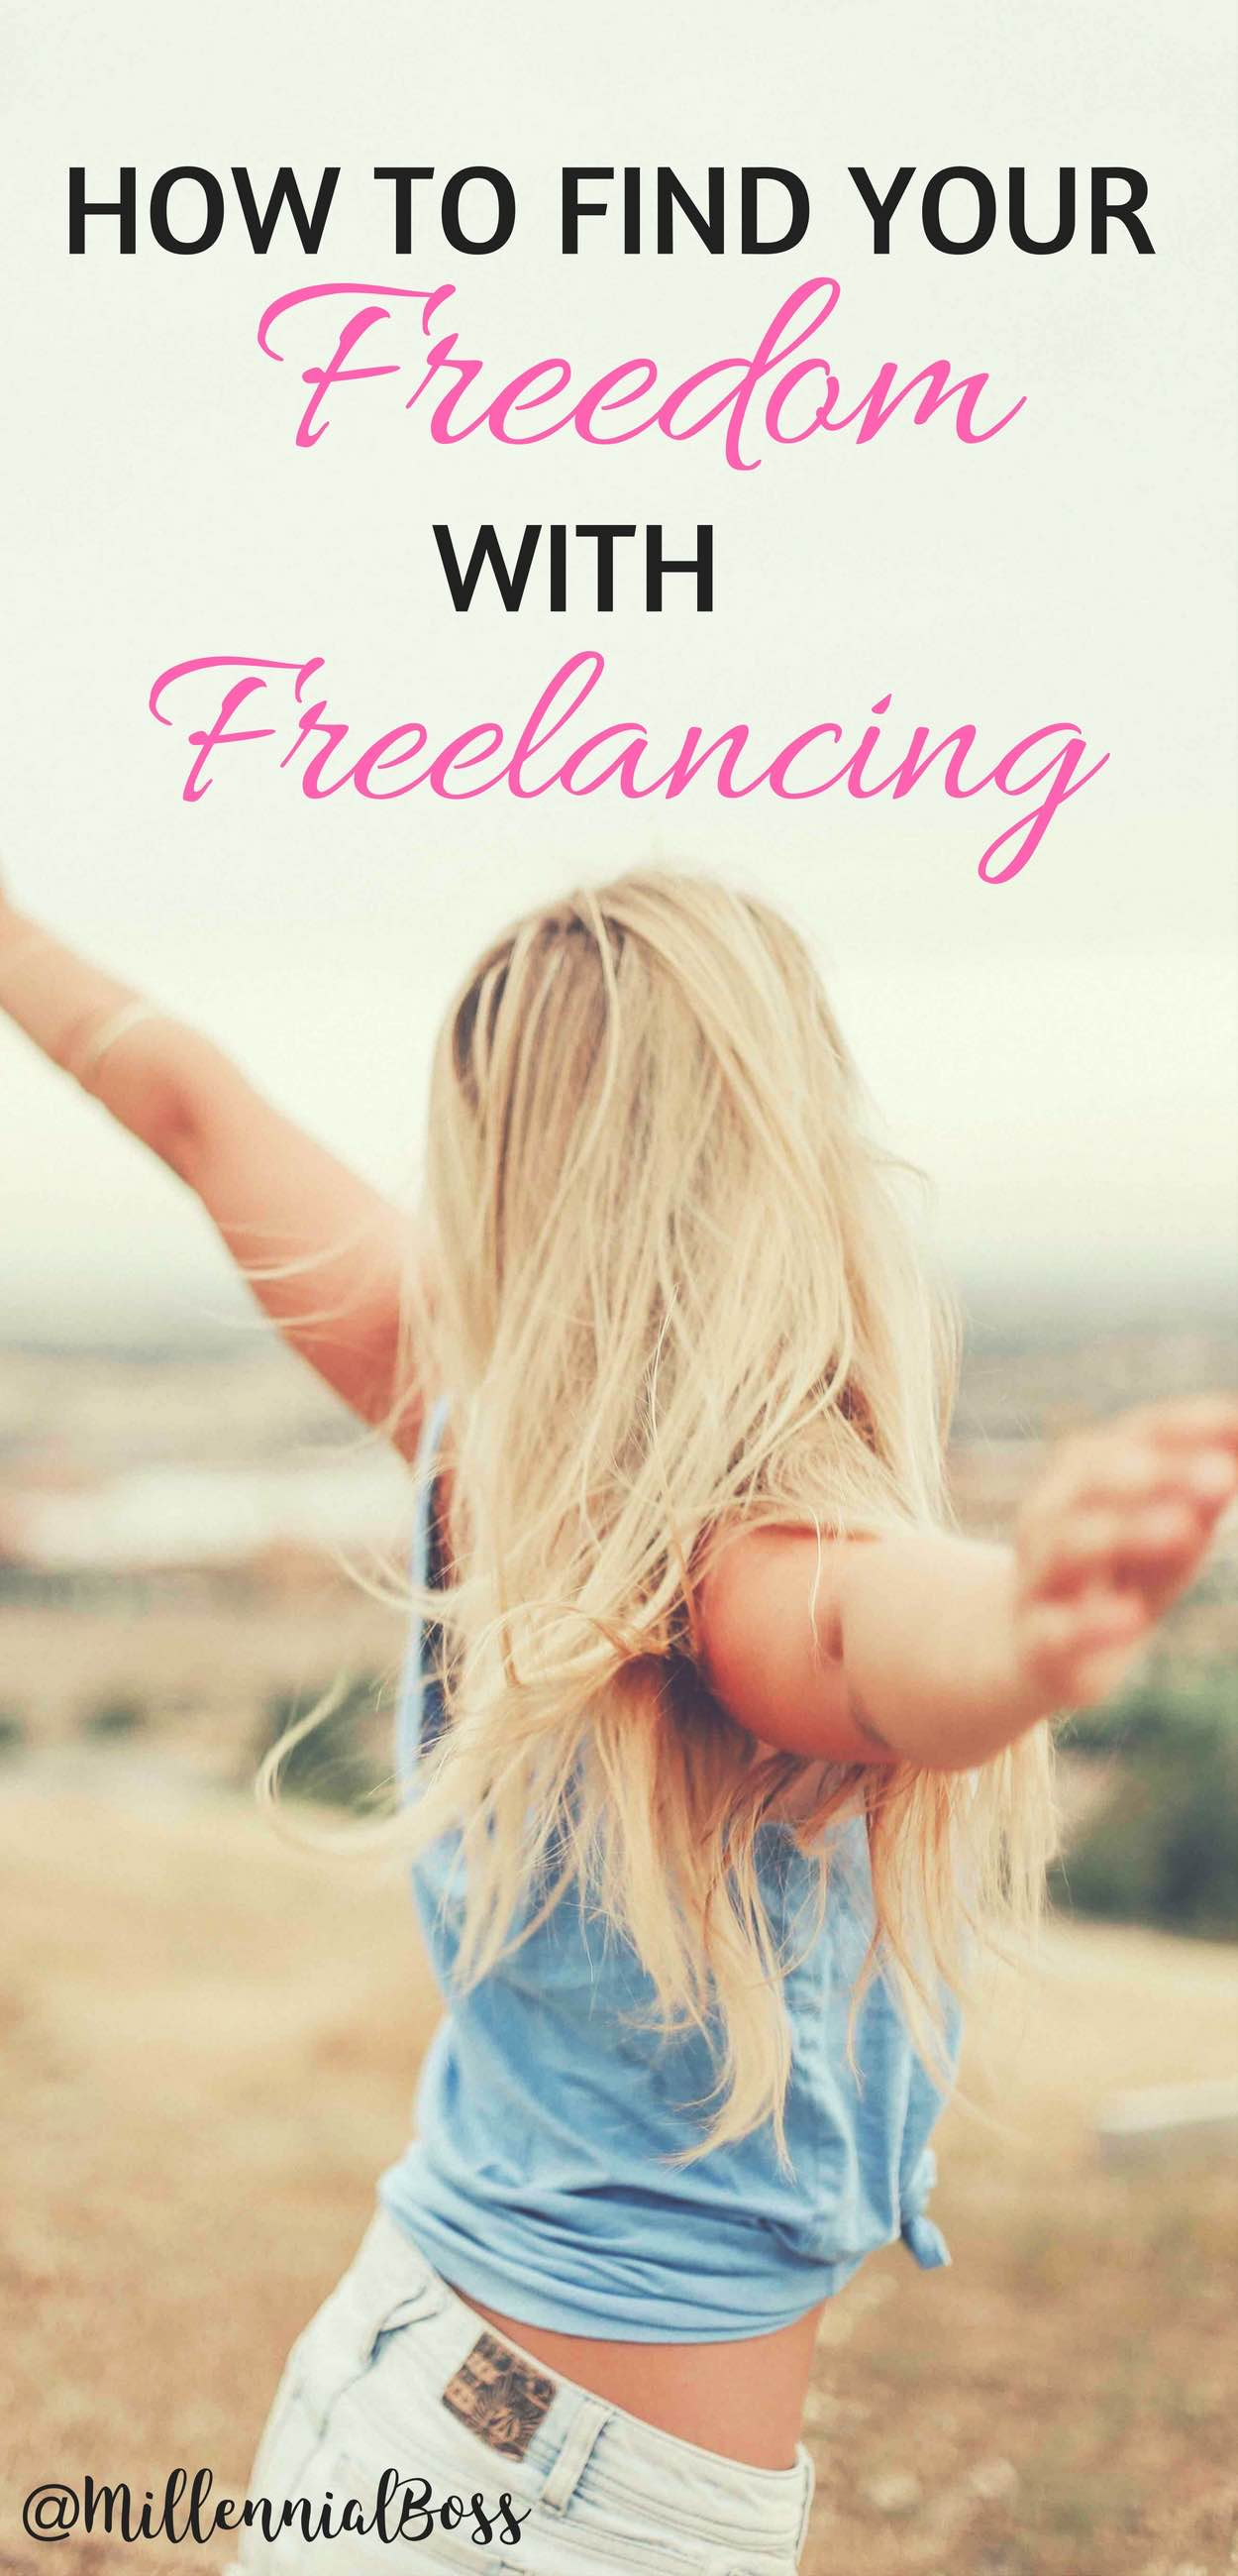 How to find freelance jobs | Hear from Kim who runs her own digital marketing consulting company